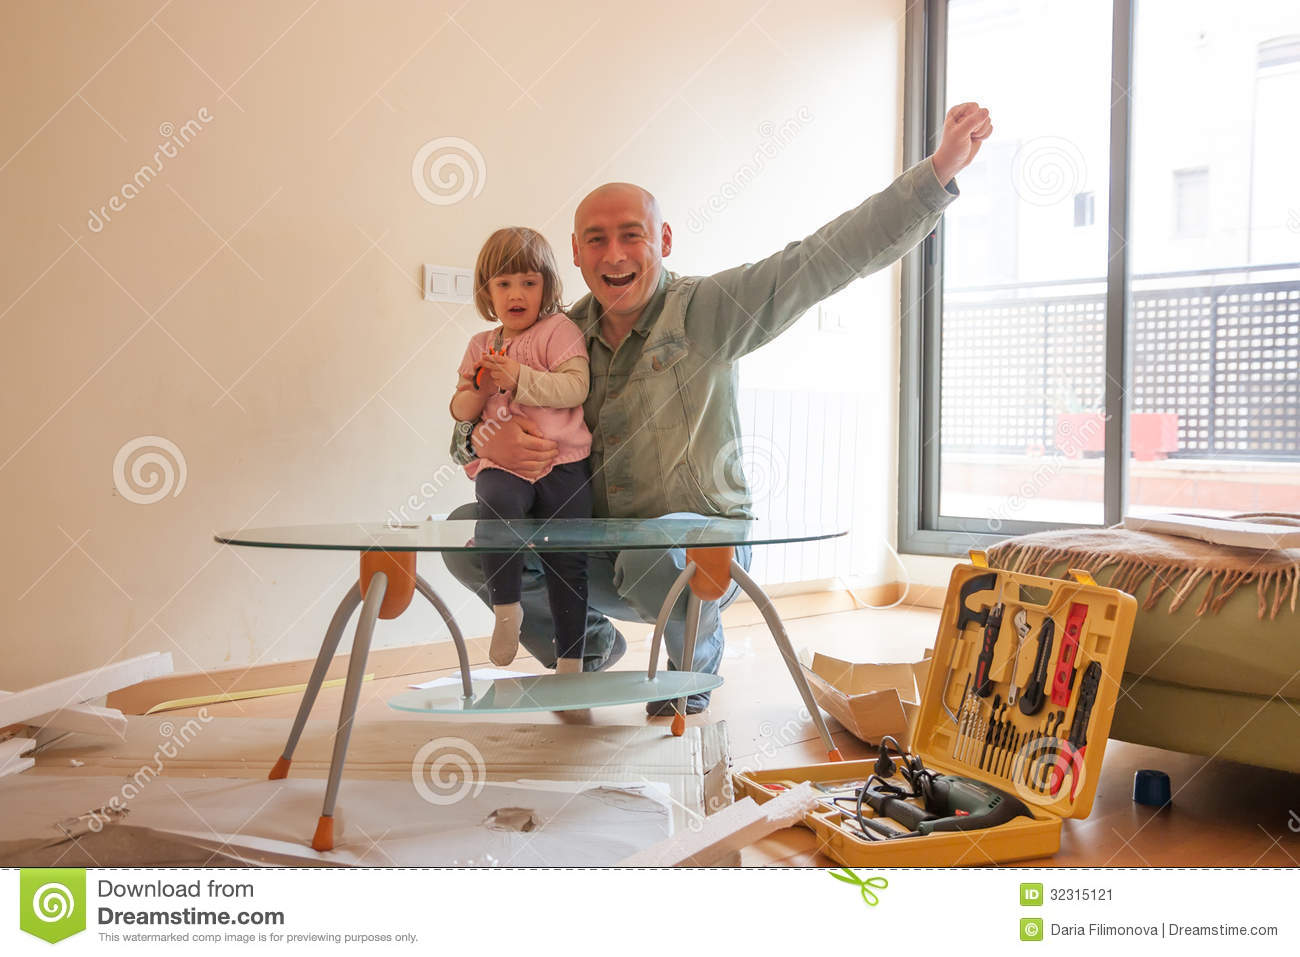 Dad and daughter renovating coffee table